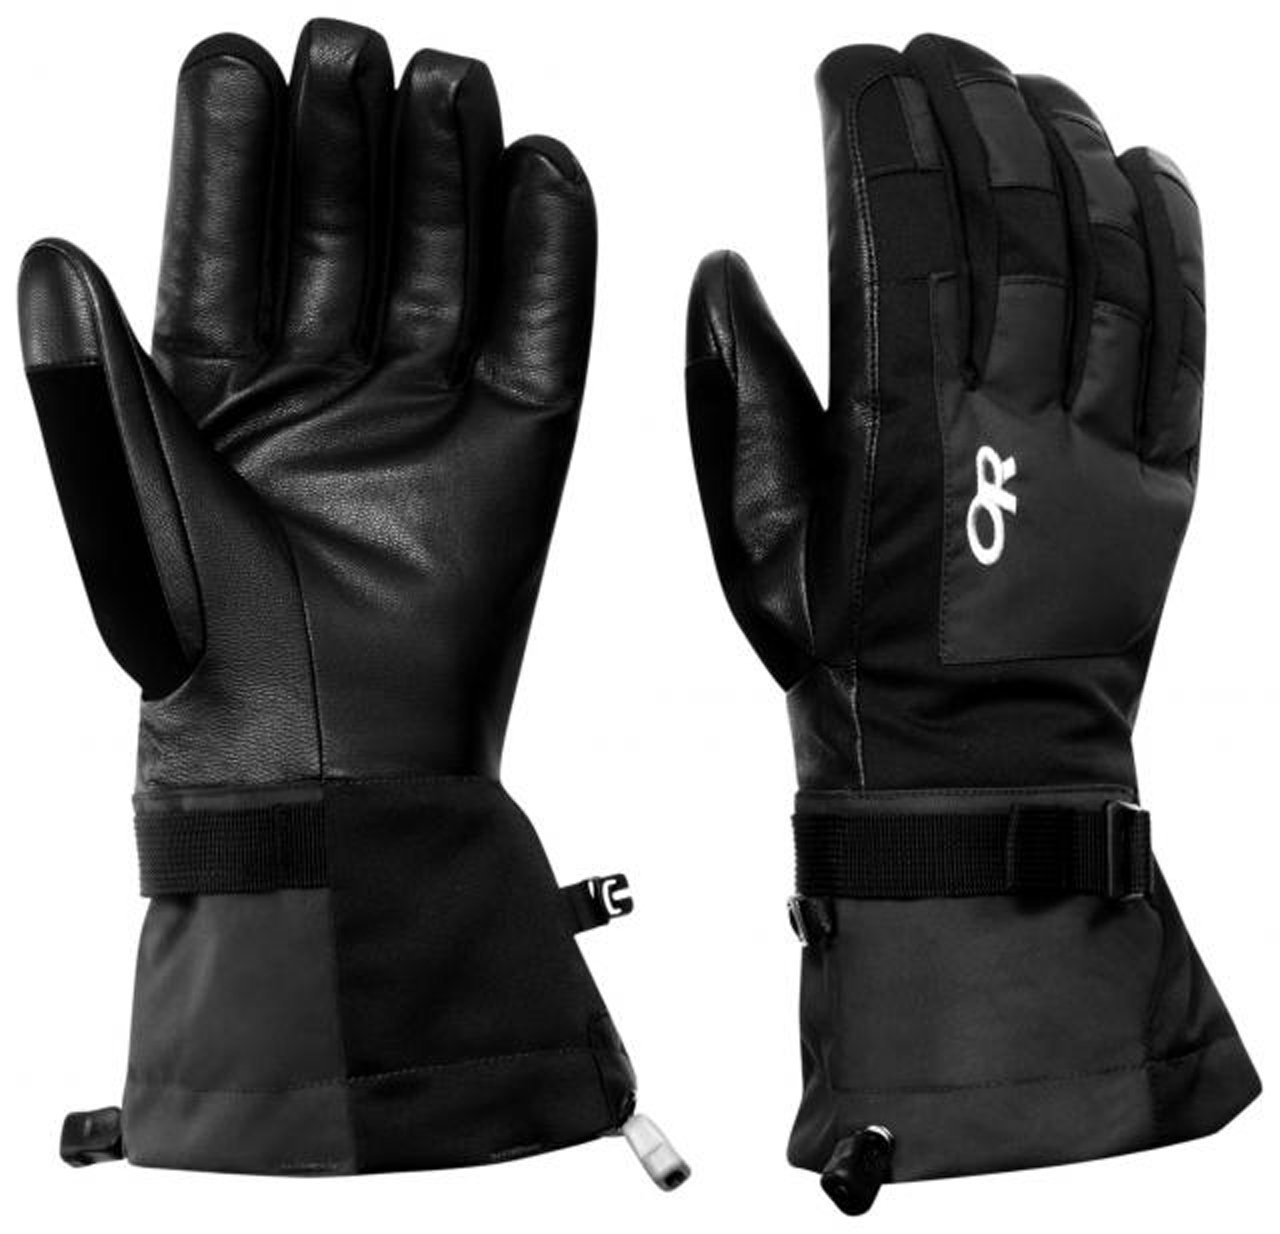 Mens gloves next - Amazon Com Outdoor Research Or Men S Revolution Gloves Sports Outdoors